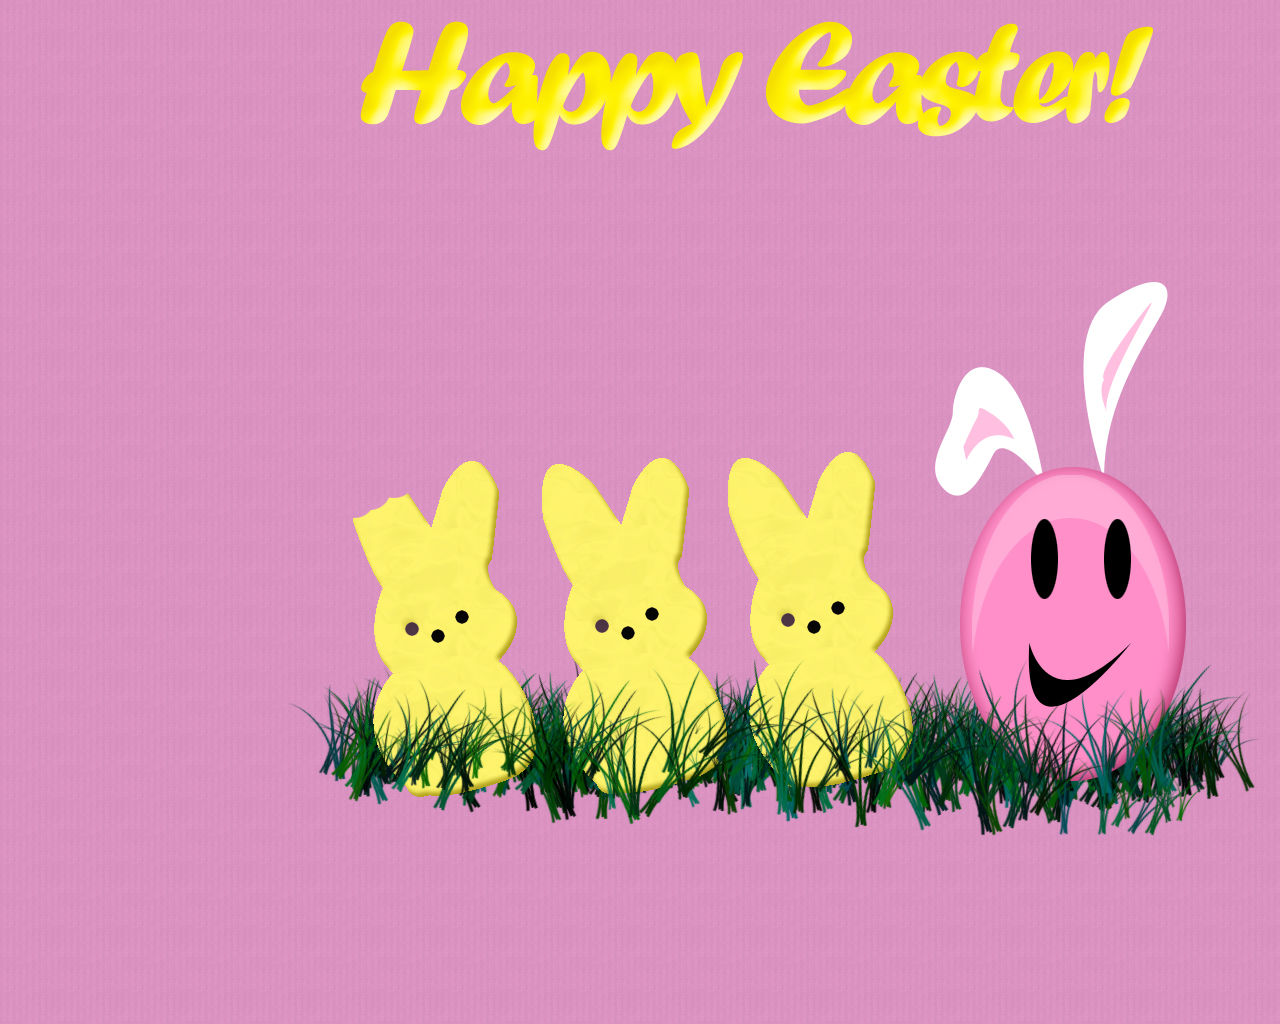 1000 Images About Easter Wallpaper On Pinterest: Happy Easter Pictures, Photos, And Images For Facebook